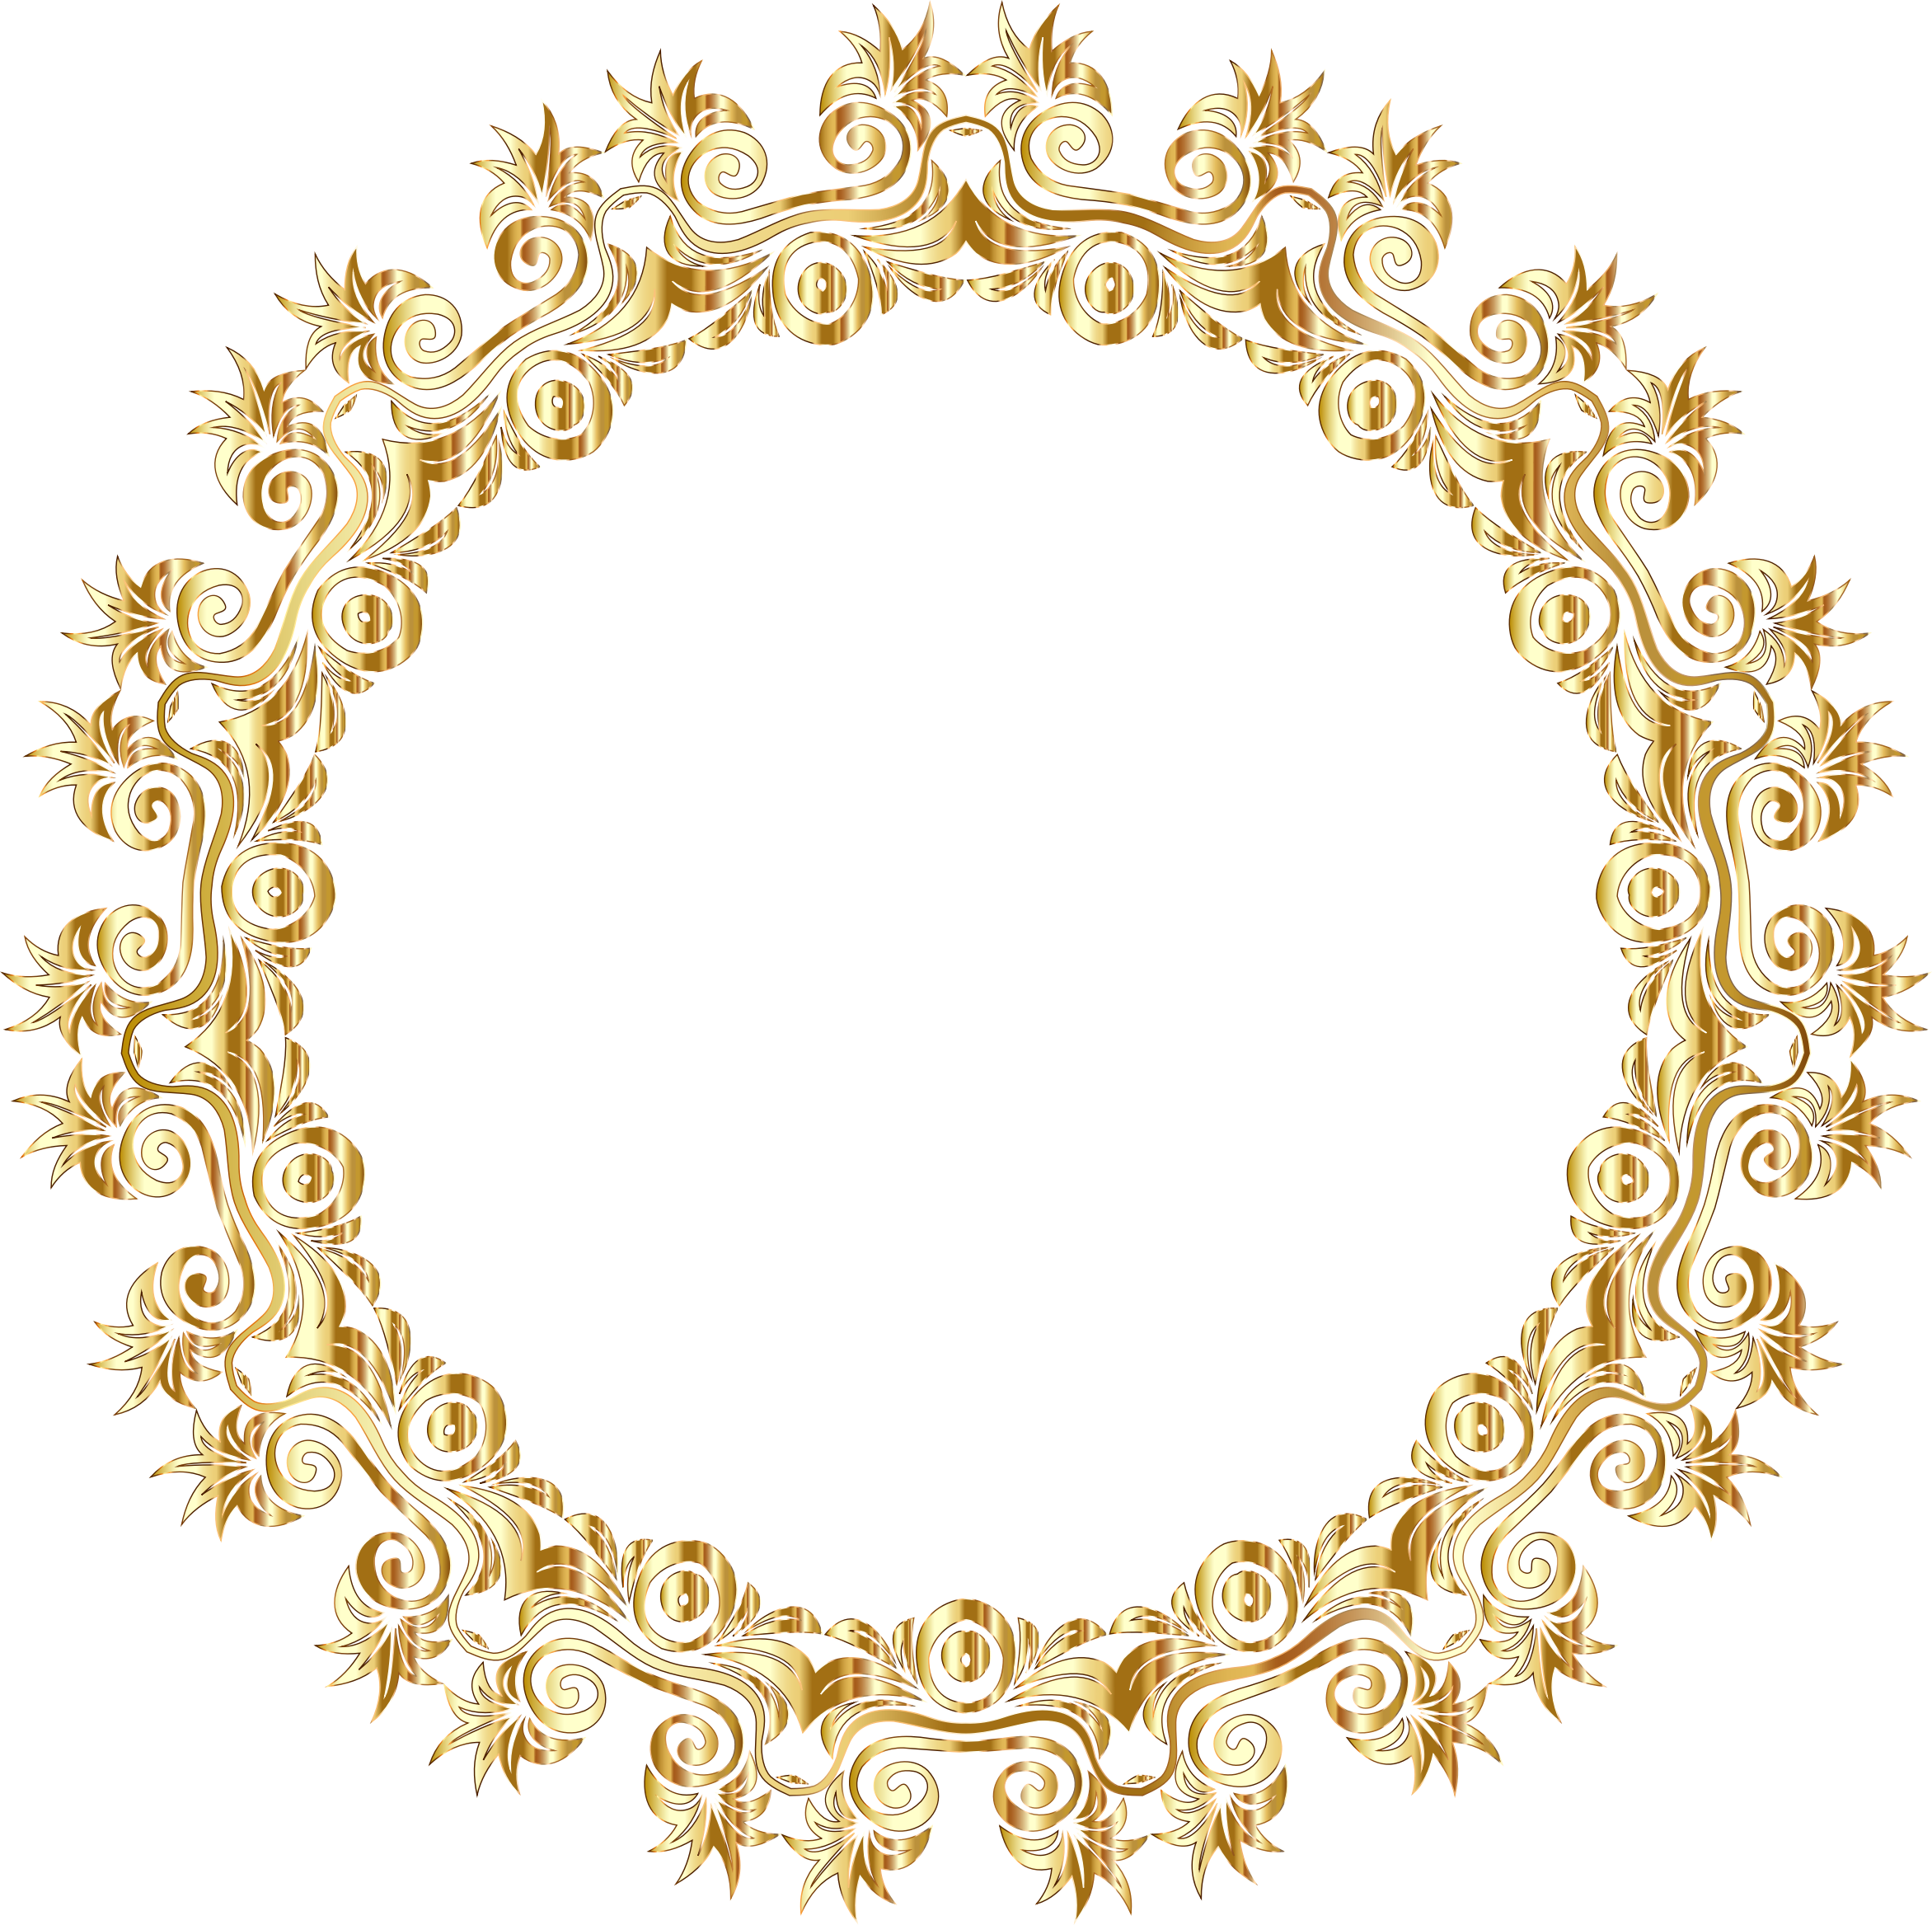 Gold background png. Floral flourish motif frame